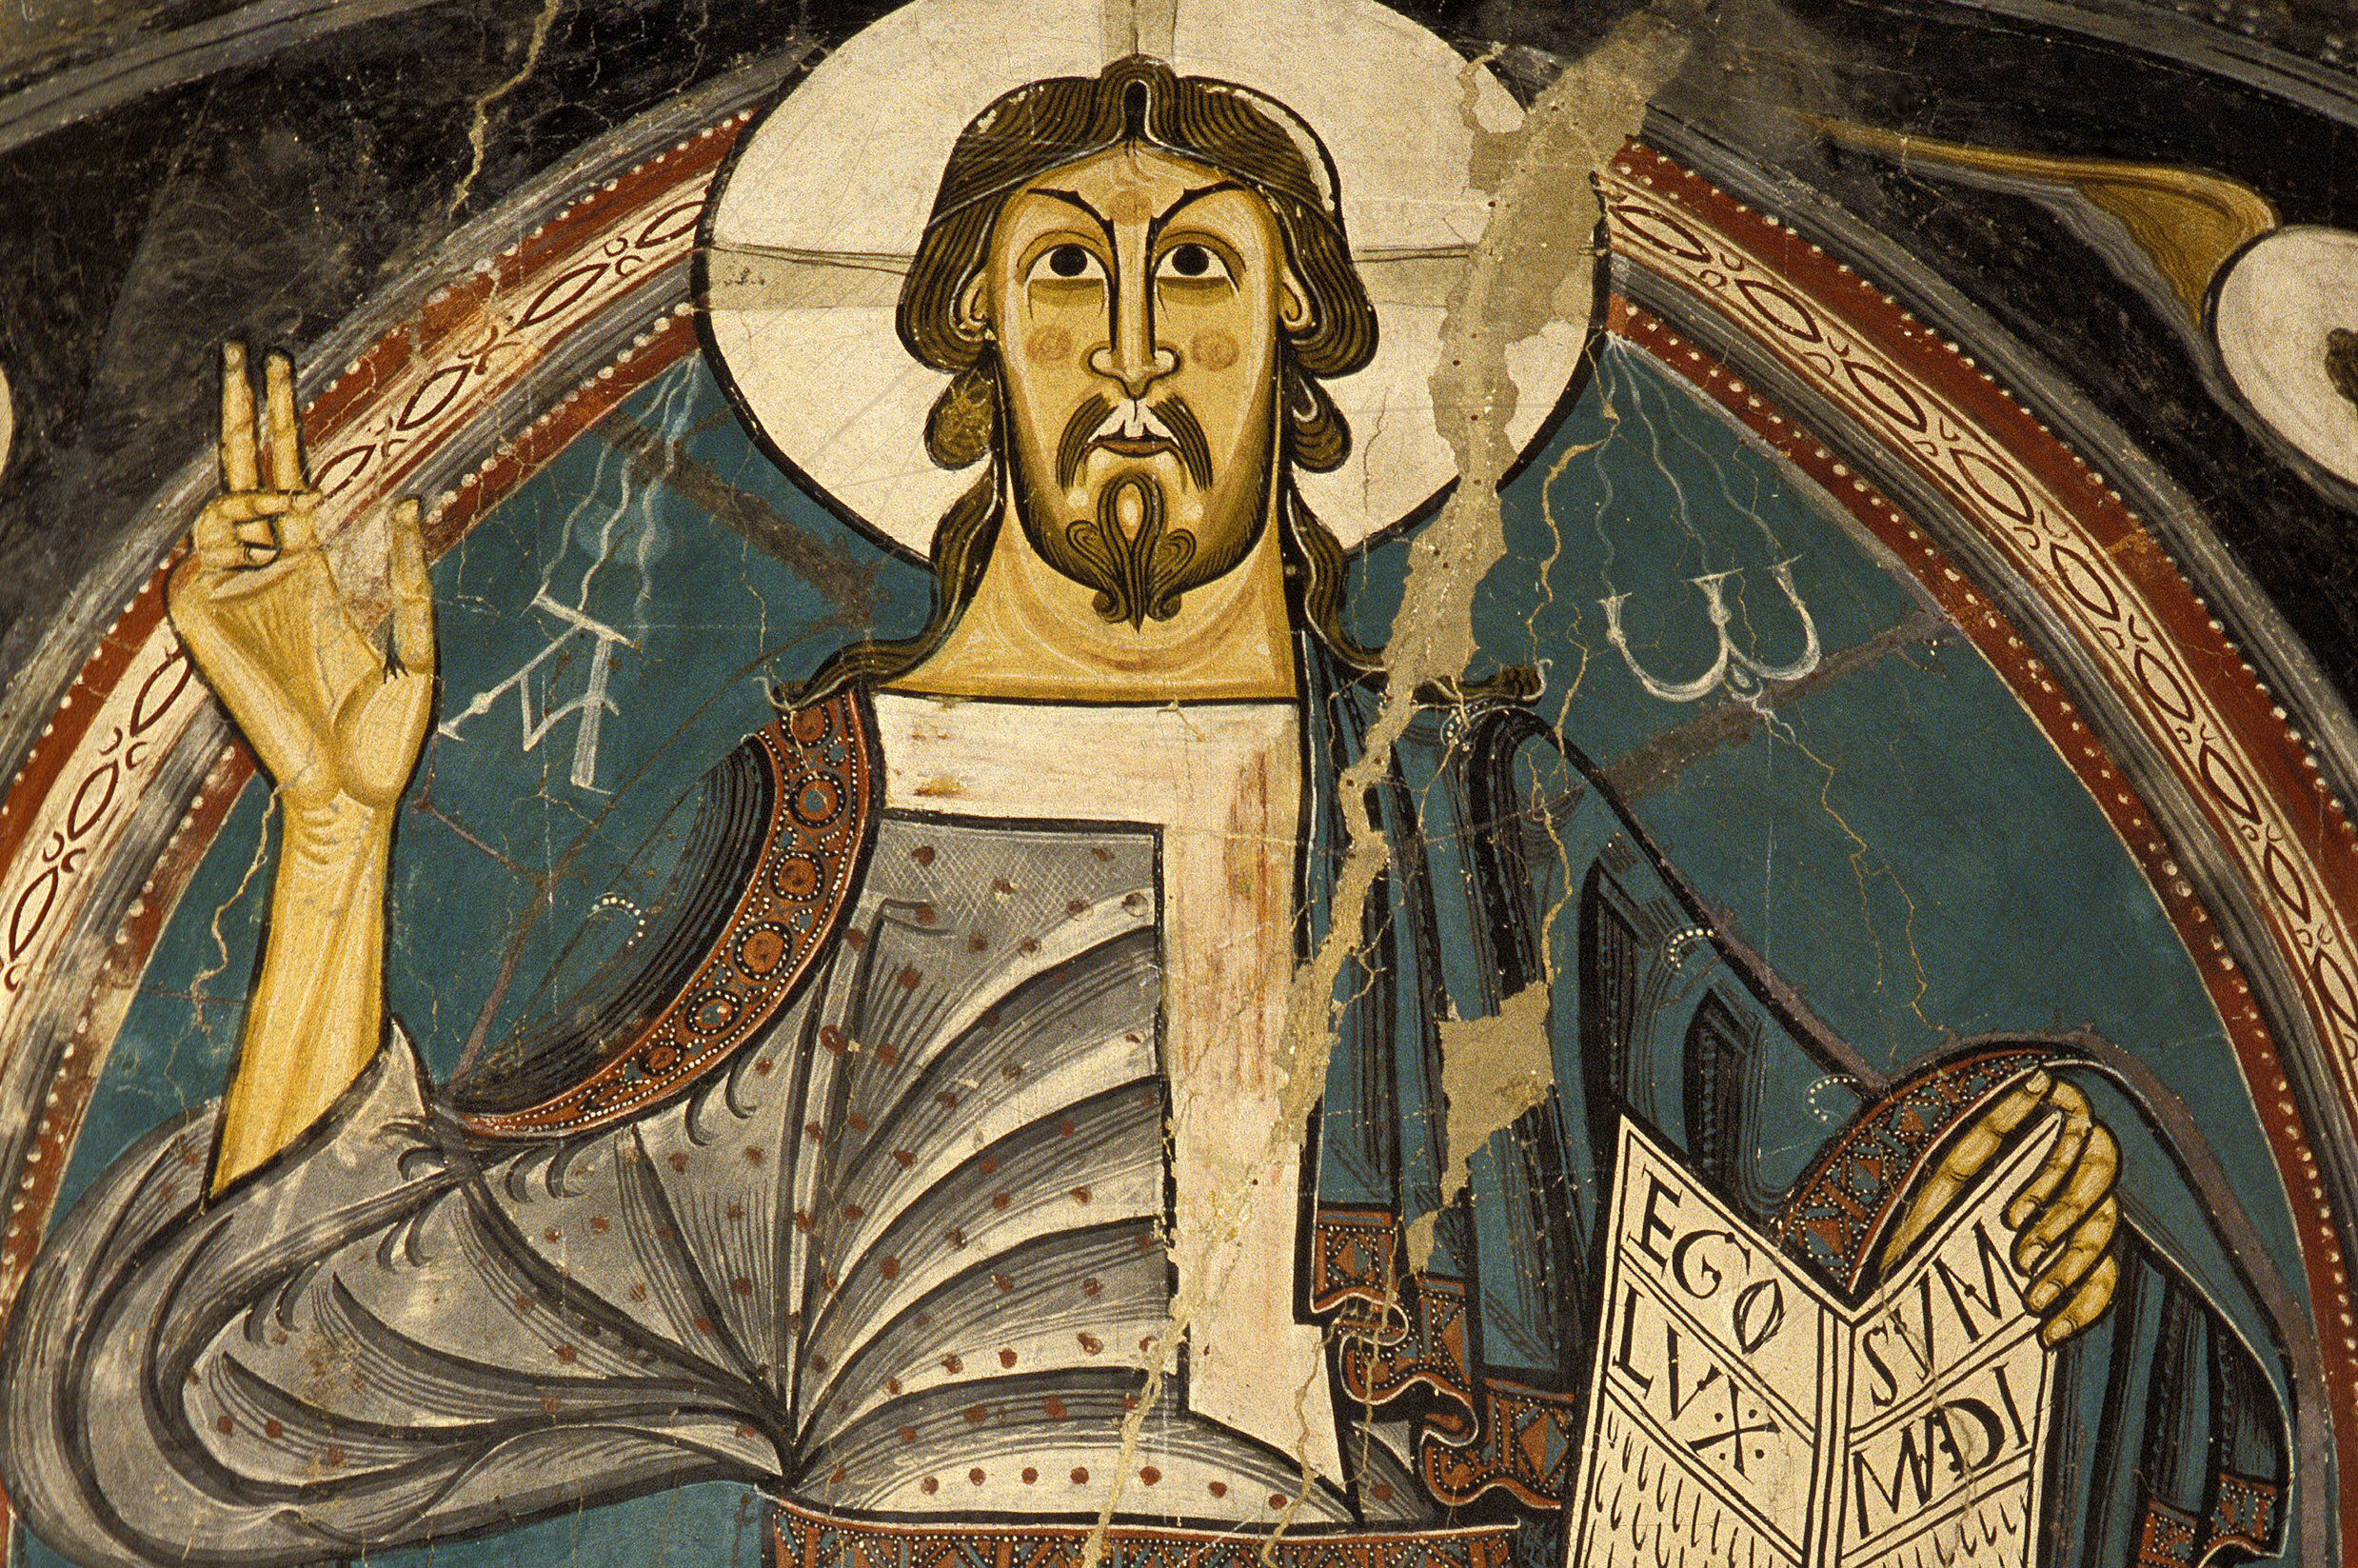 Romanesque Portrayal of Christ, Detail Painted on the Apse of San Clemente in Taüll, Catalonia, Spain